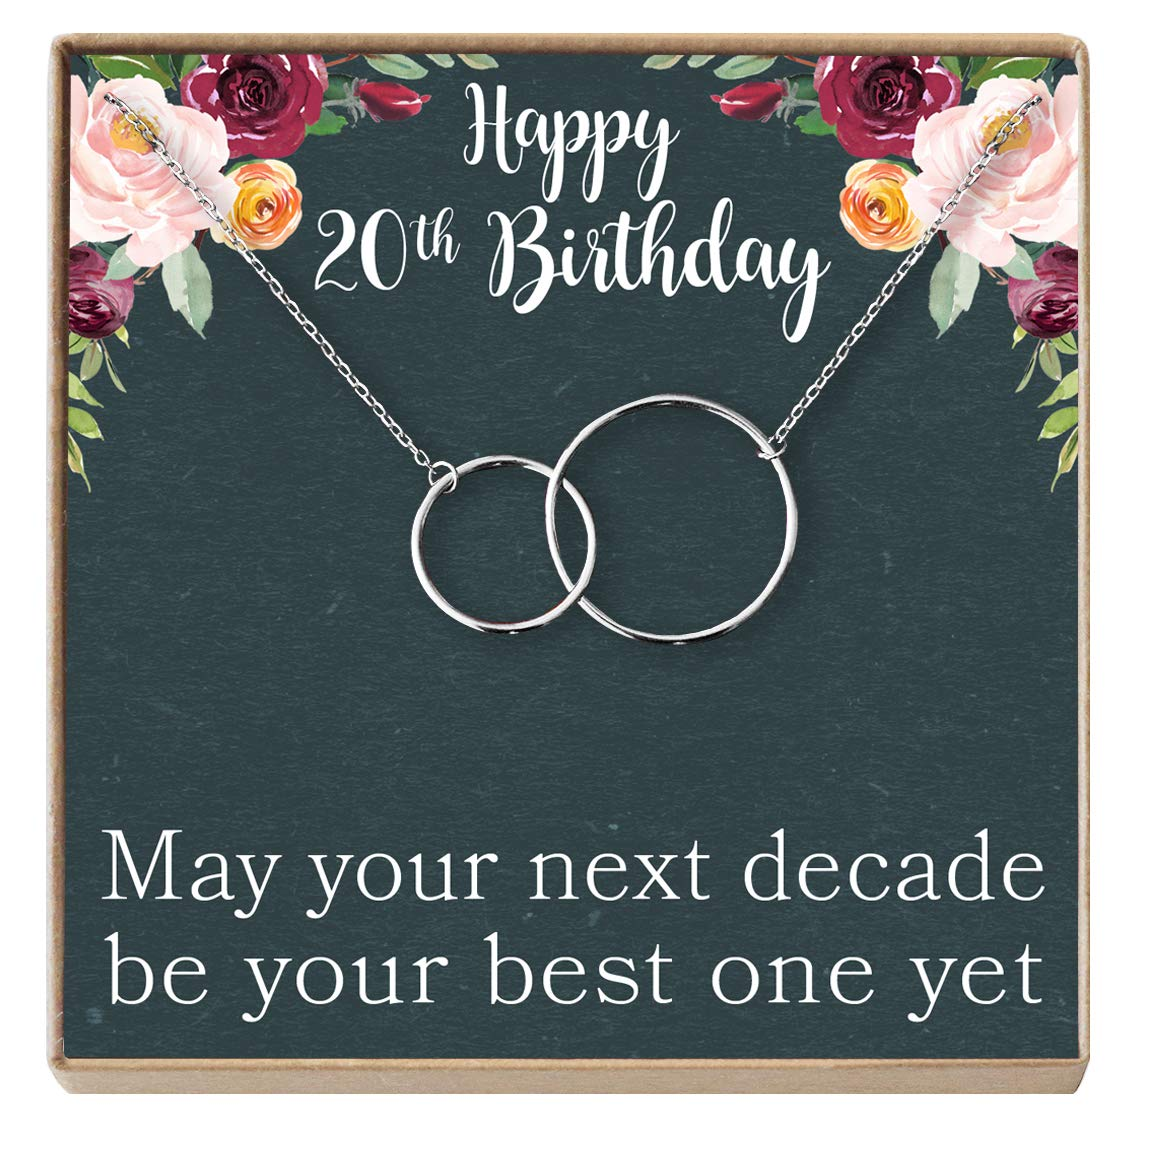 20th Birthday Gift Necklace: Birthday Gift Jewelry Gift for Her Two Decades 2 Interlocking Circles